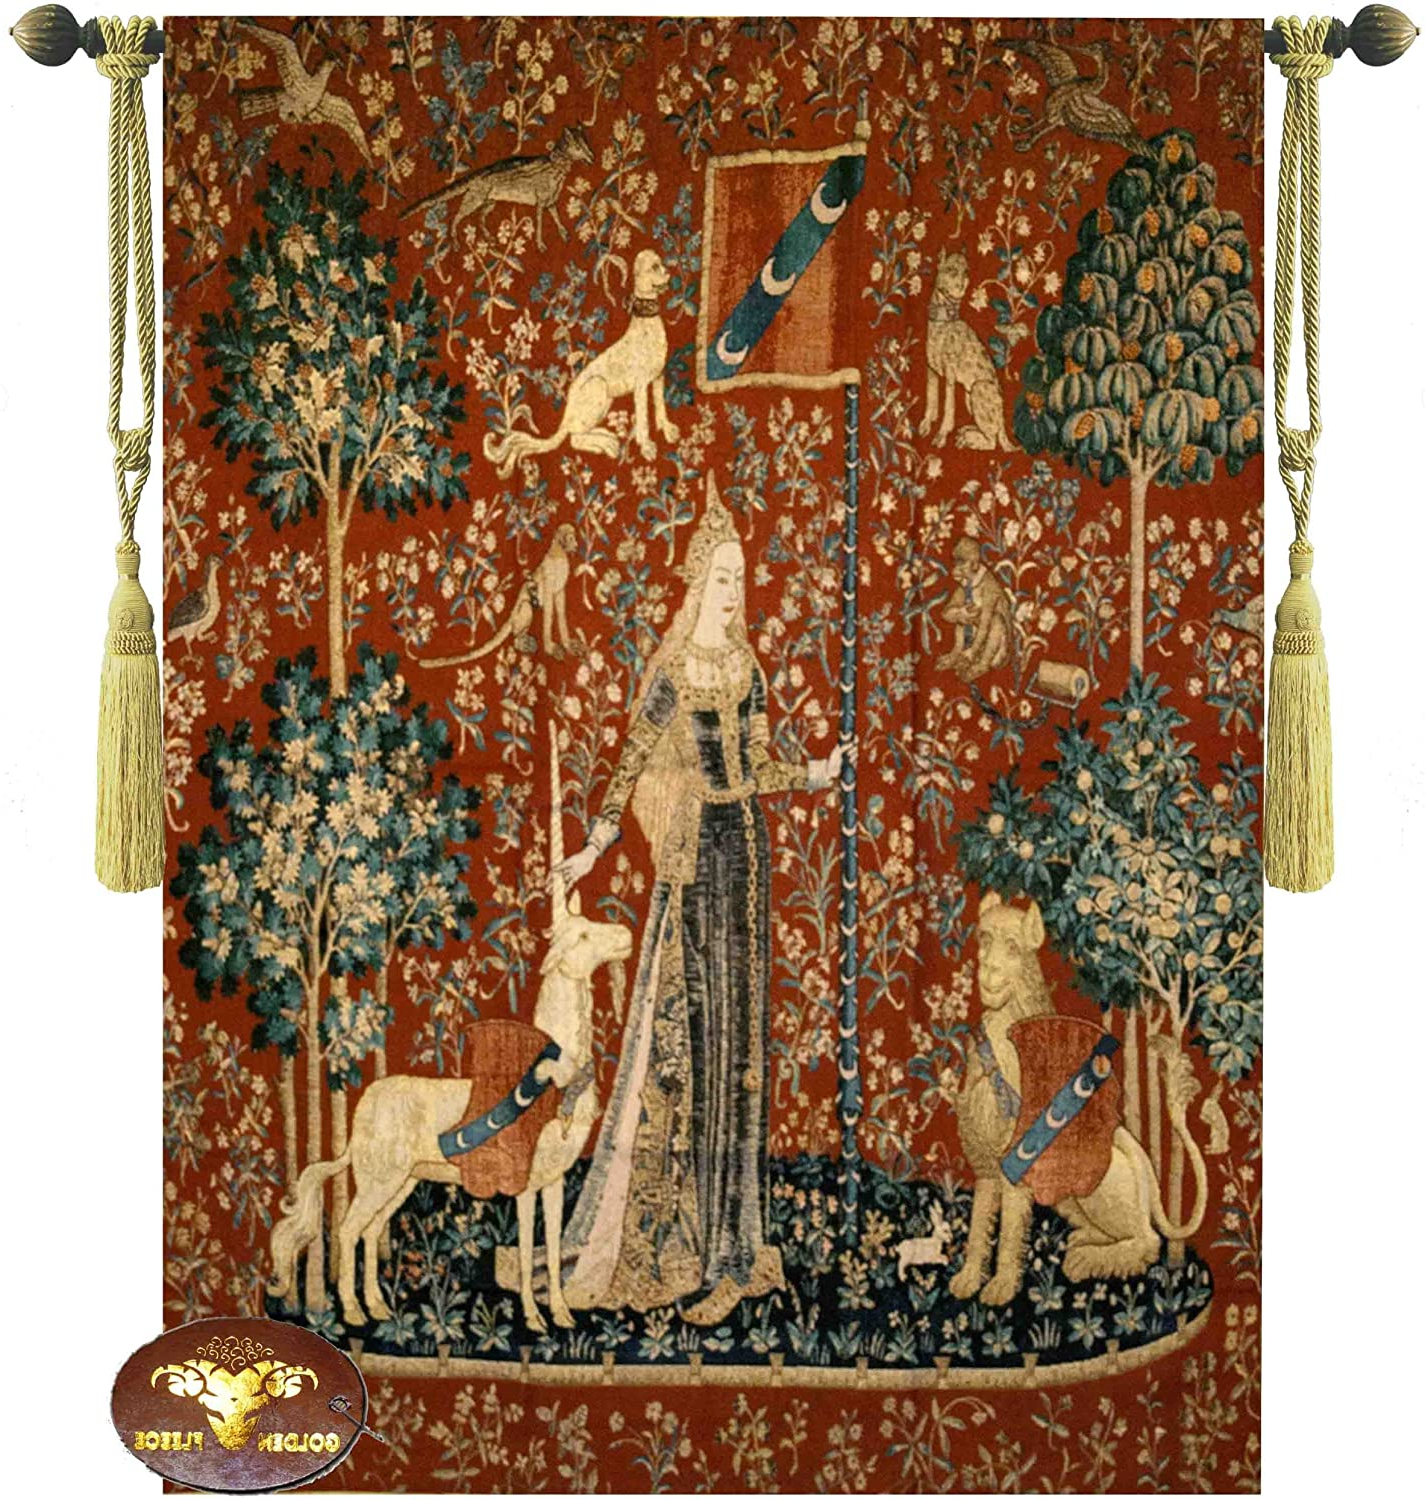 """Blended Fabric Unicorn Captive And Unicorn Hunt Wall Hangings Inside Famous Beautiful The Lady And The Unicorn Touch 41""""x54"""" Fine Tapestry Jacquard Woven Wall Hanging Art Decor (View 5 of 20)"""